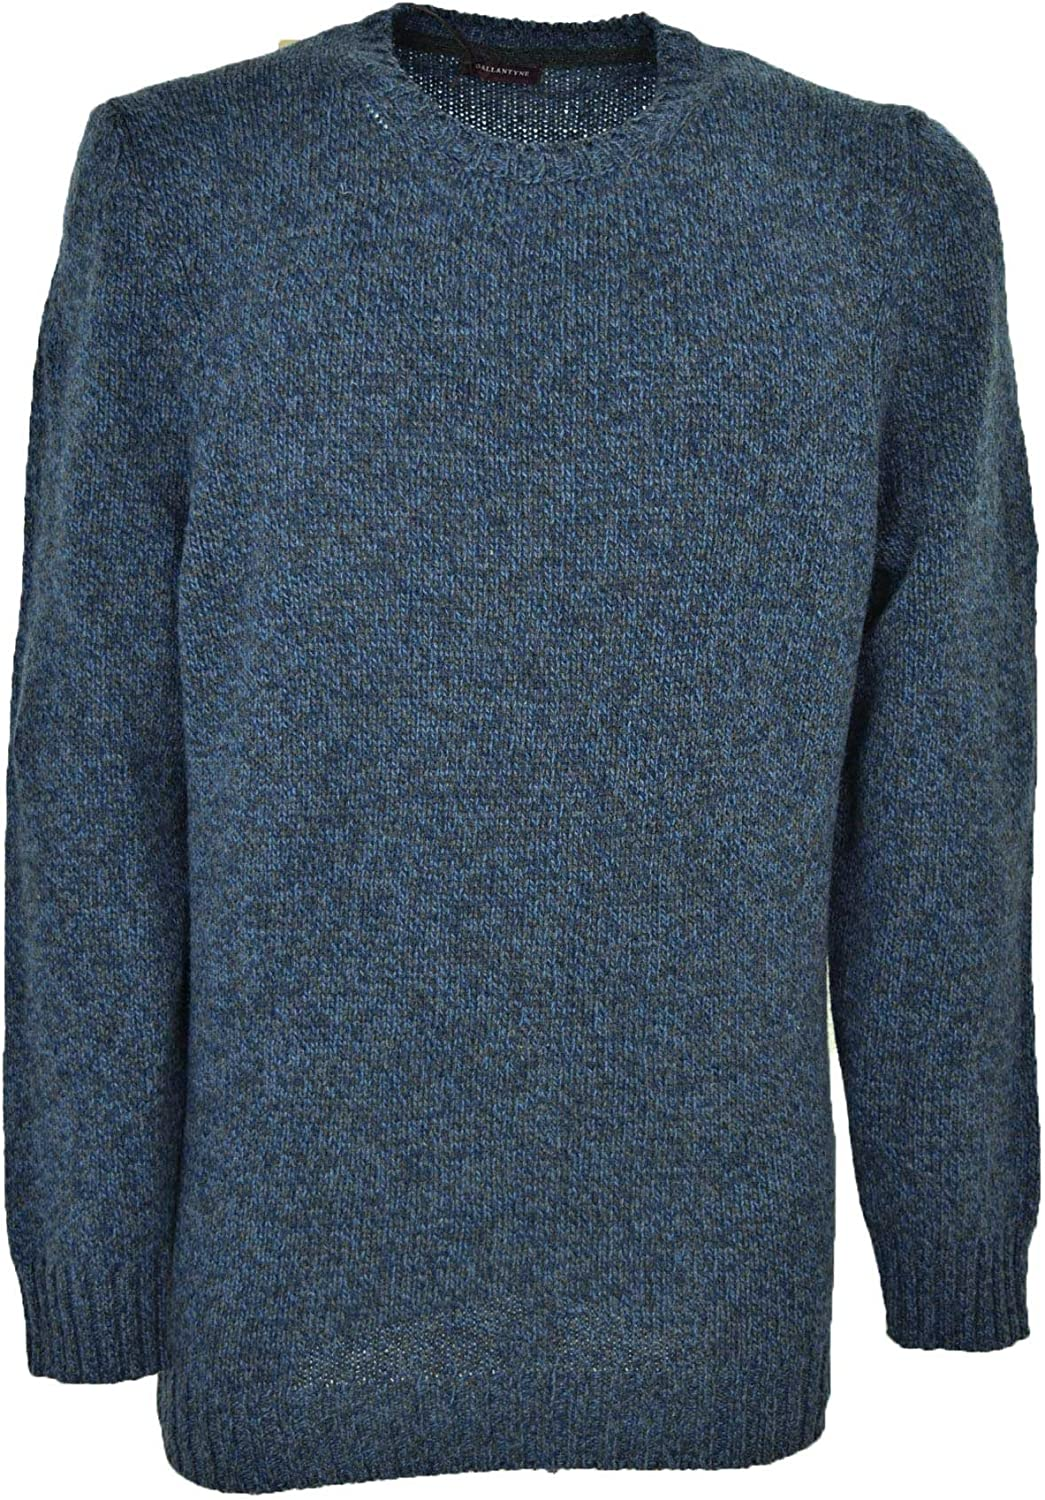 50/% Cashmere 50/% Wool Ballantyne Sweater Men Crew Neck Melange Blue